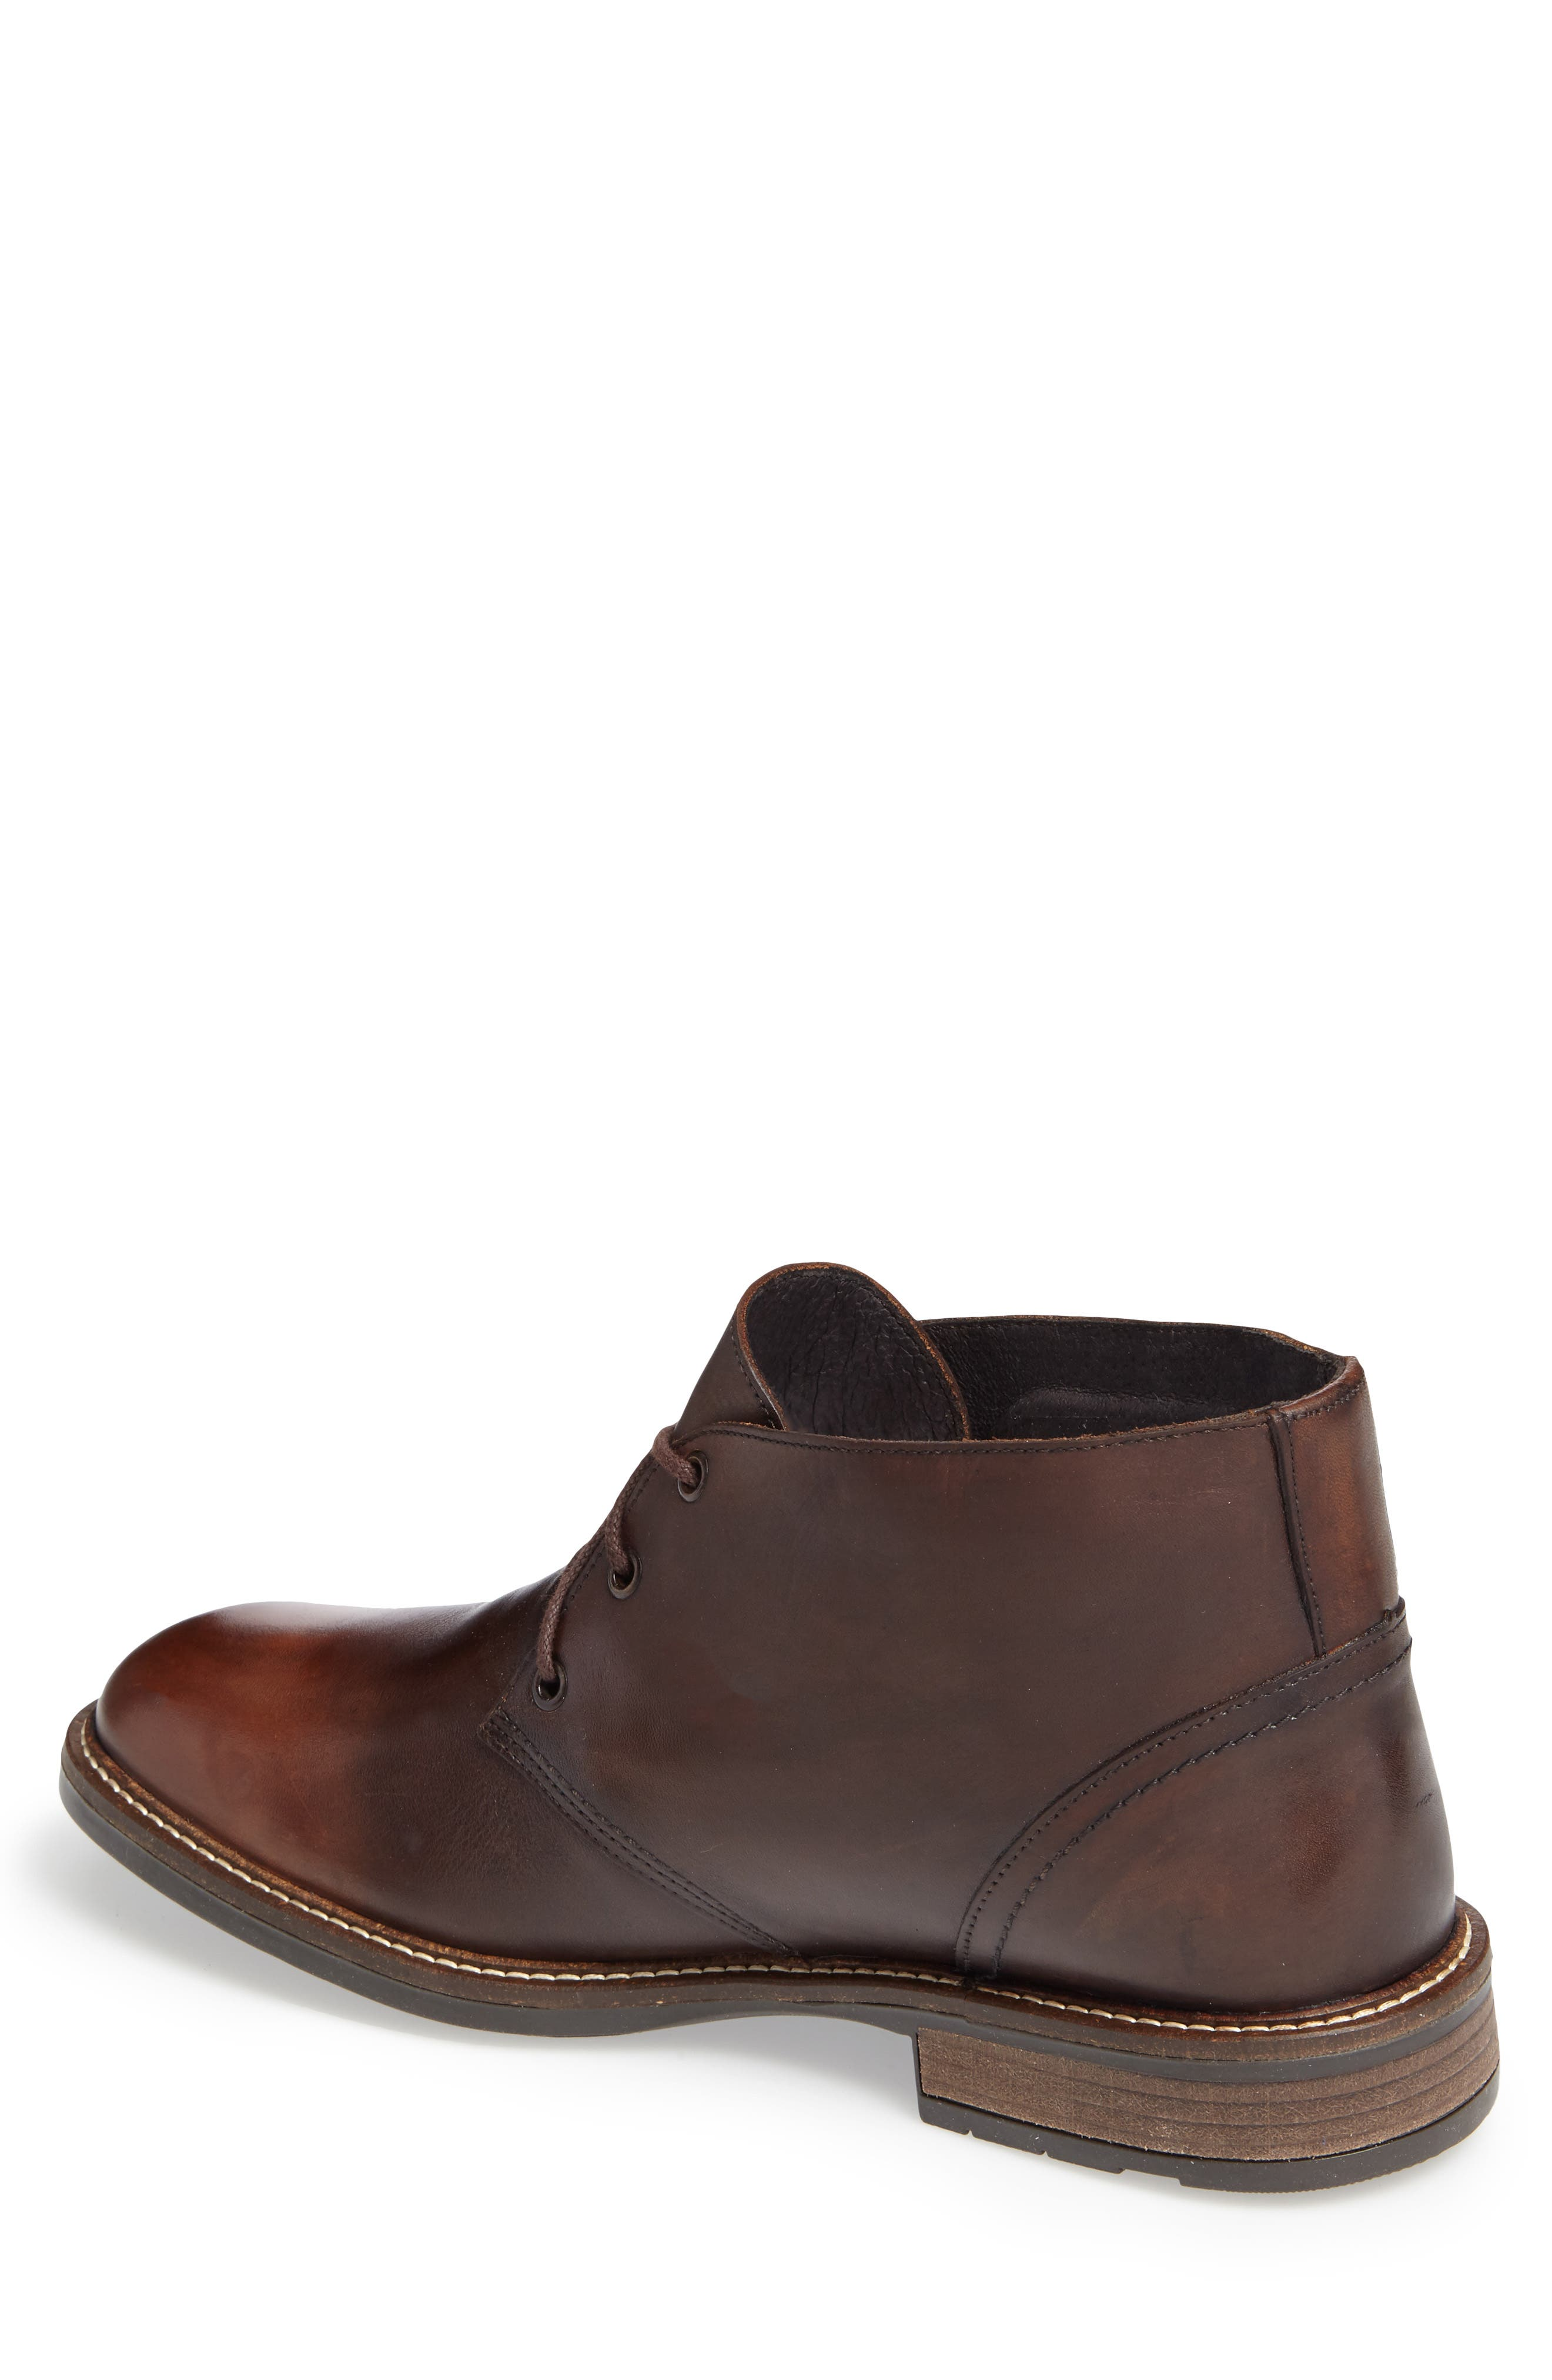 Pilot Chukka Boot,                             Alternate thumbnail 2, color,                             Brown Gradient Leather